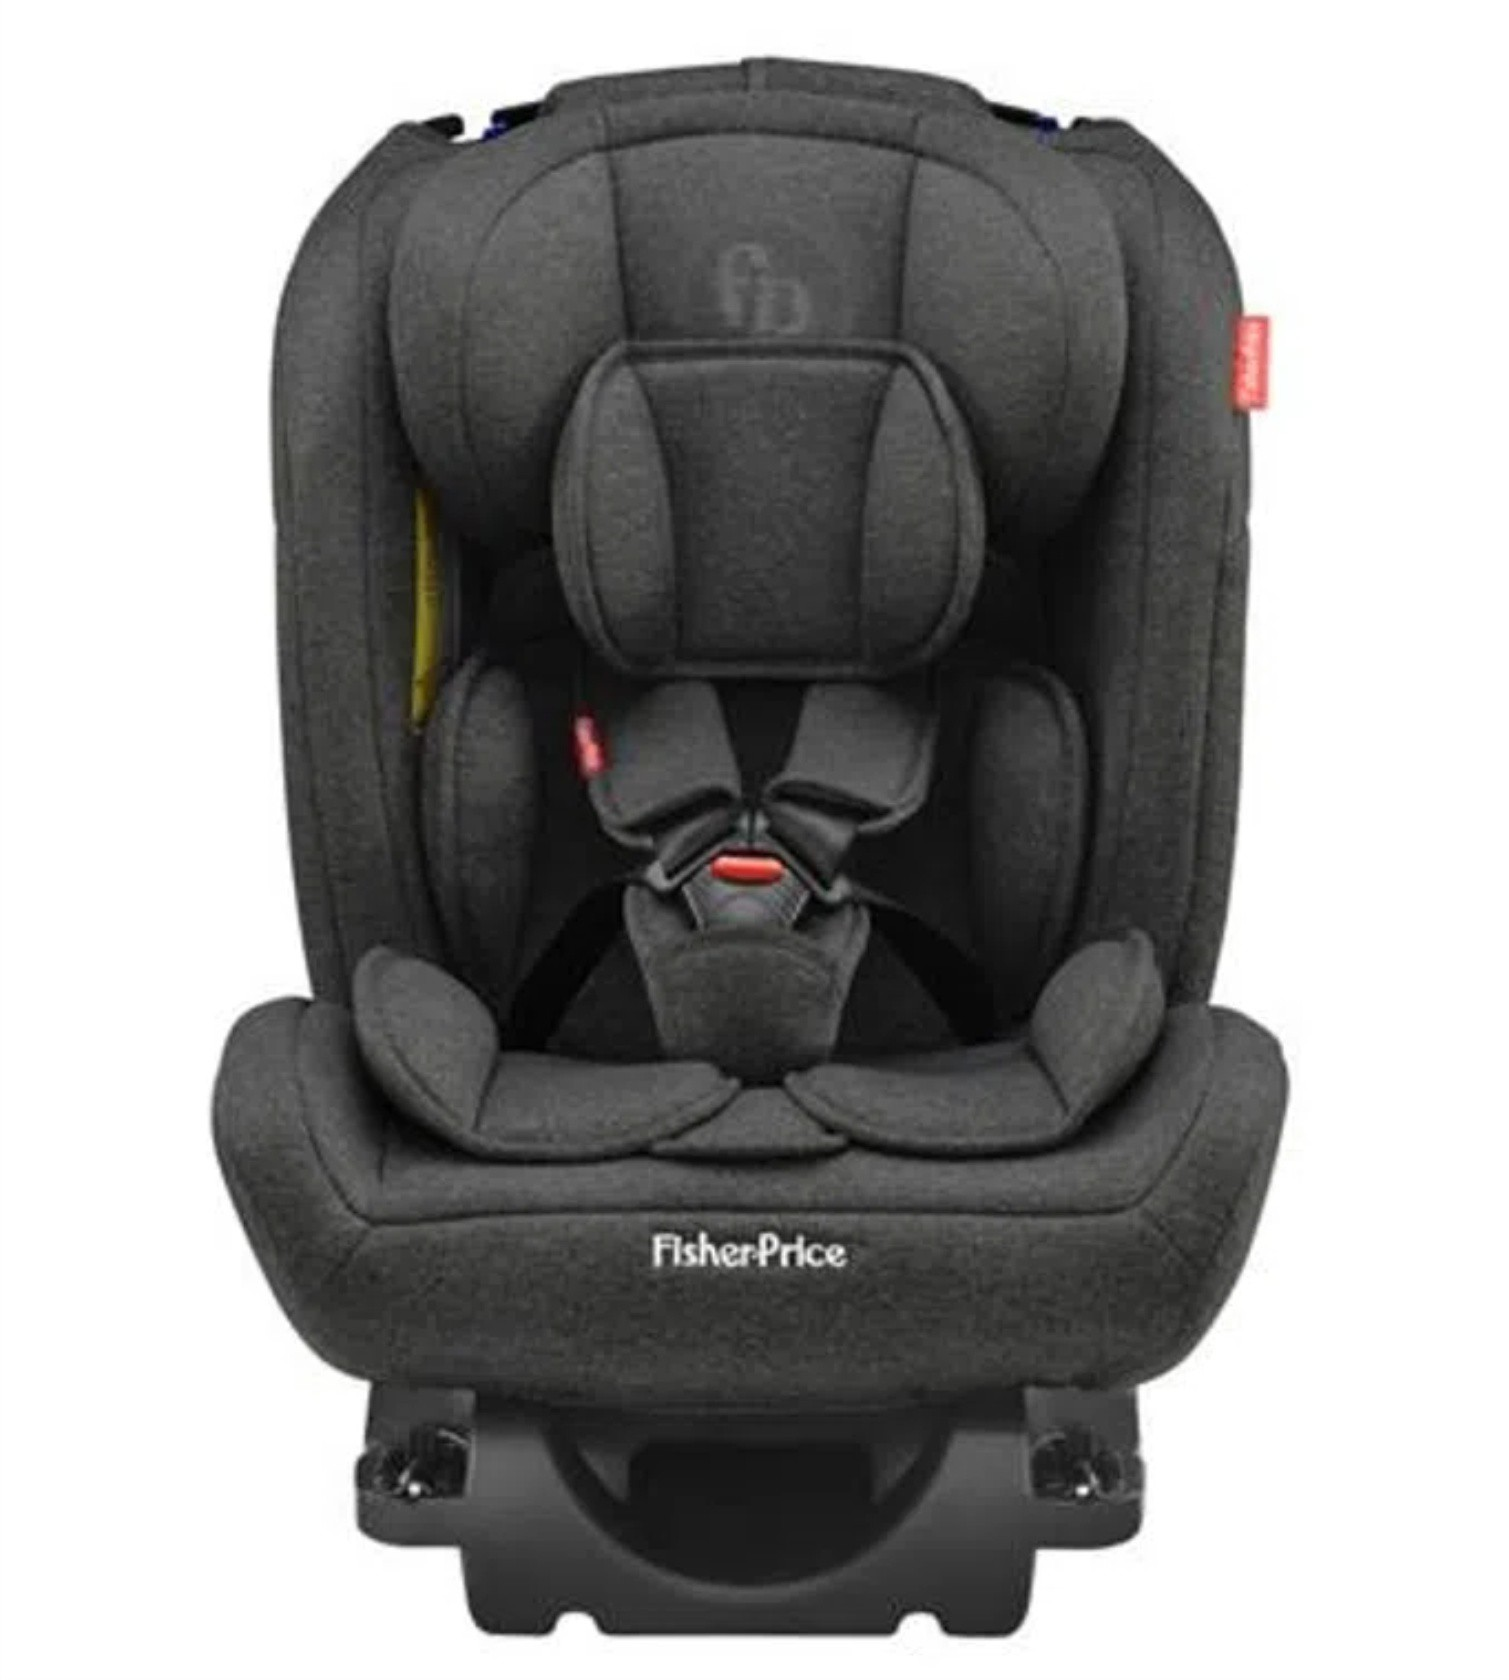 Cadeira All - Stages Fix 2.0 Fisher Price